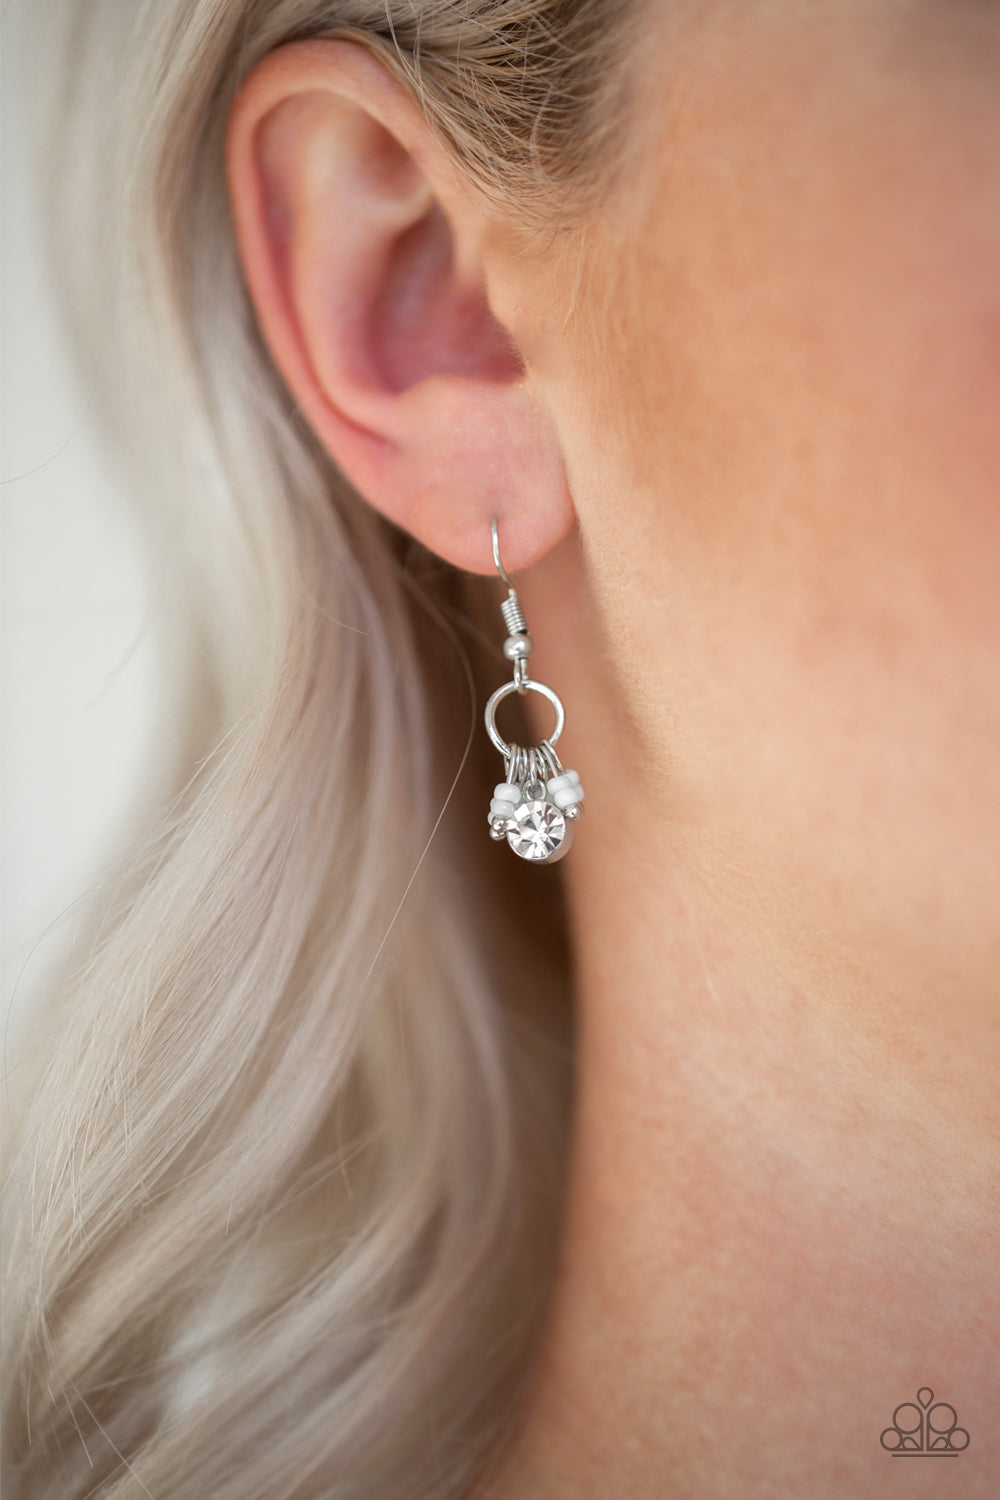 Twinkling Trinkets - White Earrings - SavvyChicksJewelry